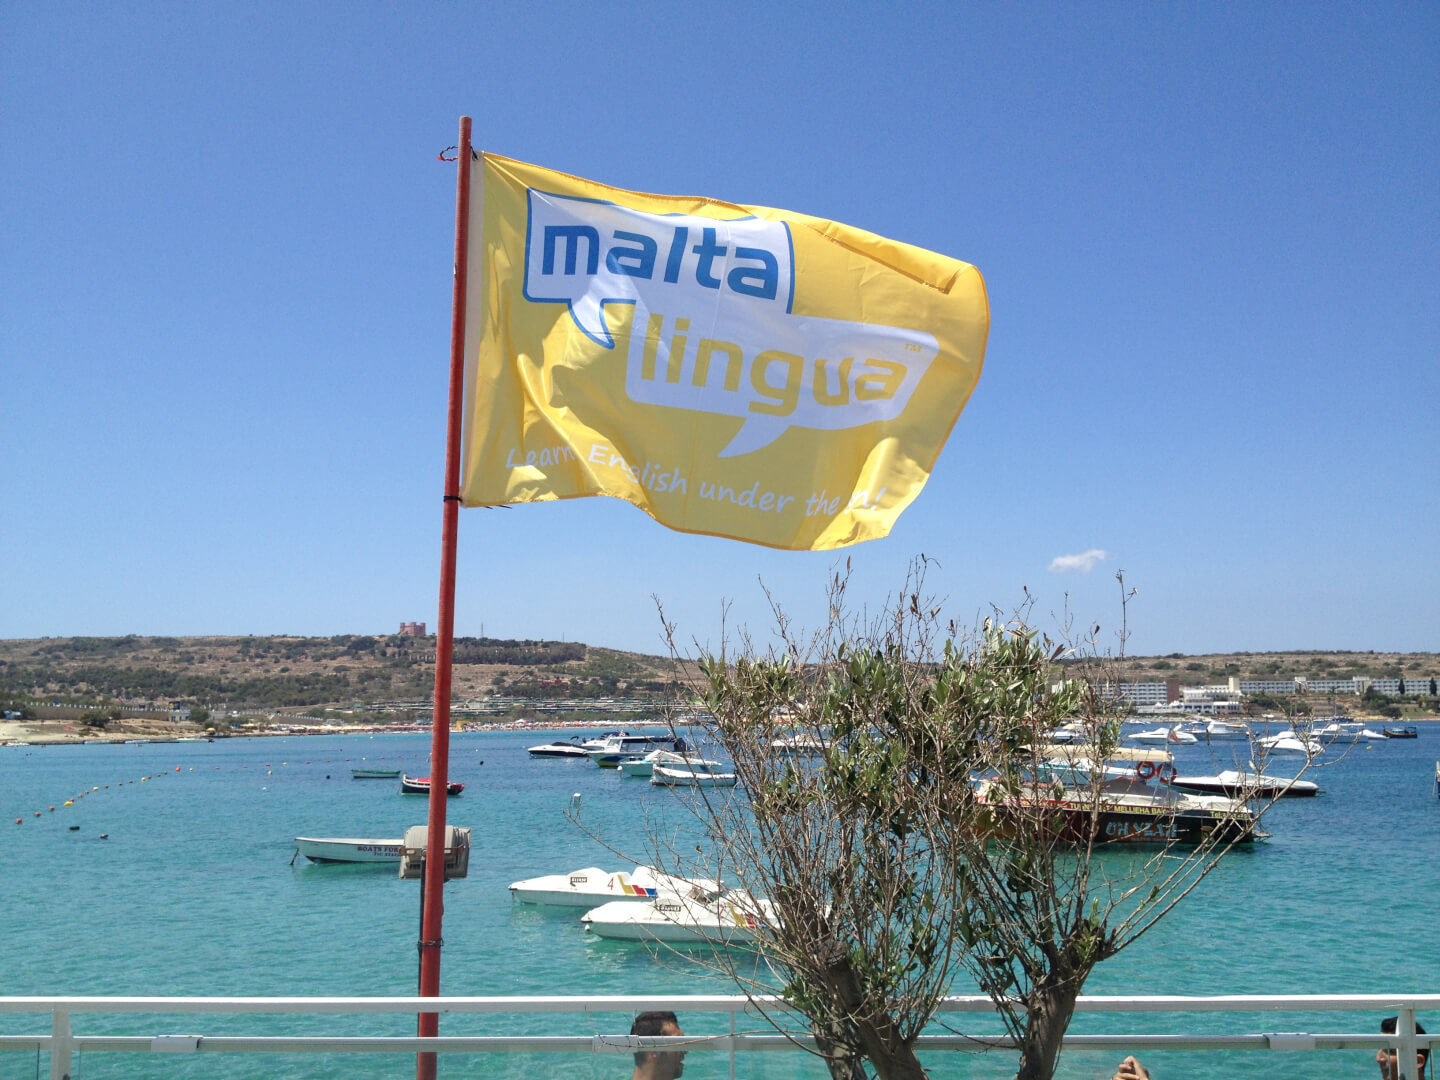 Enjoy Malta with Maltalingua